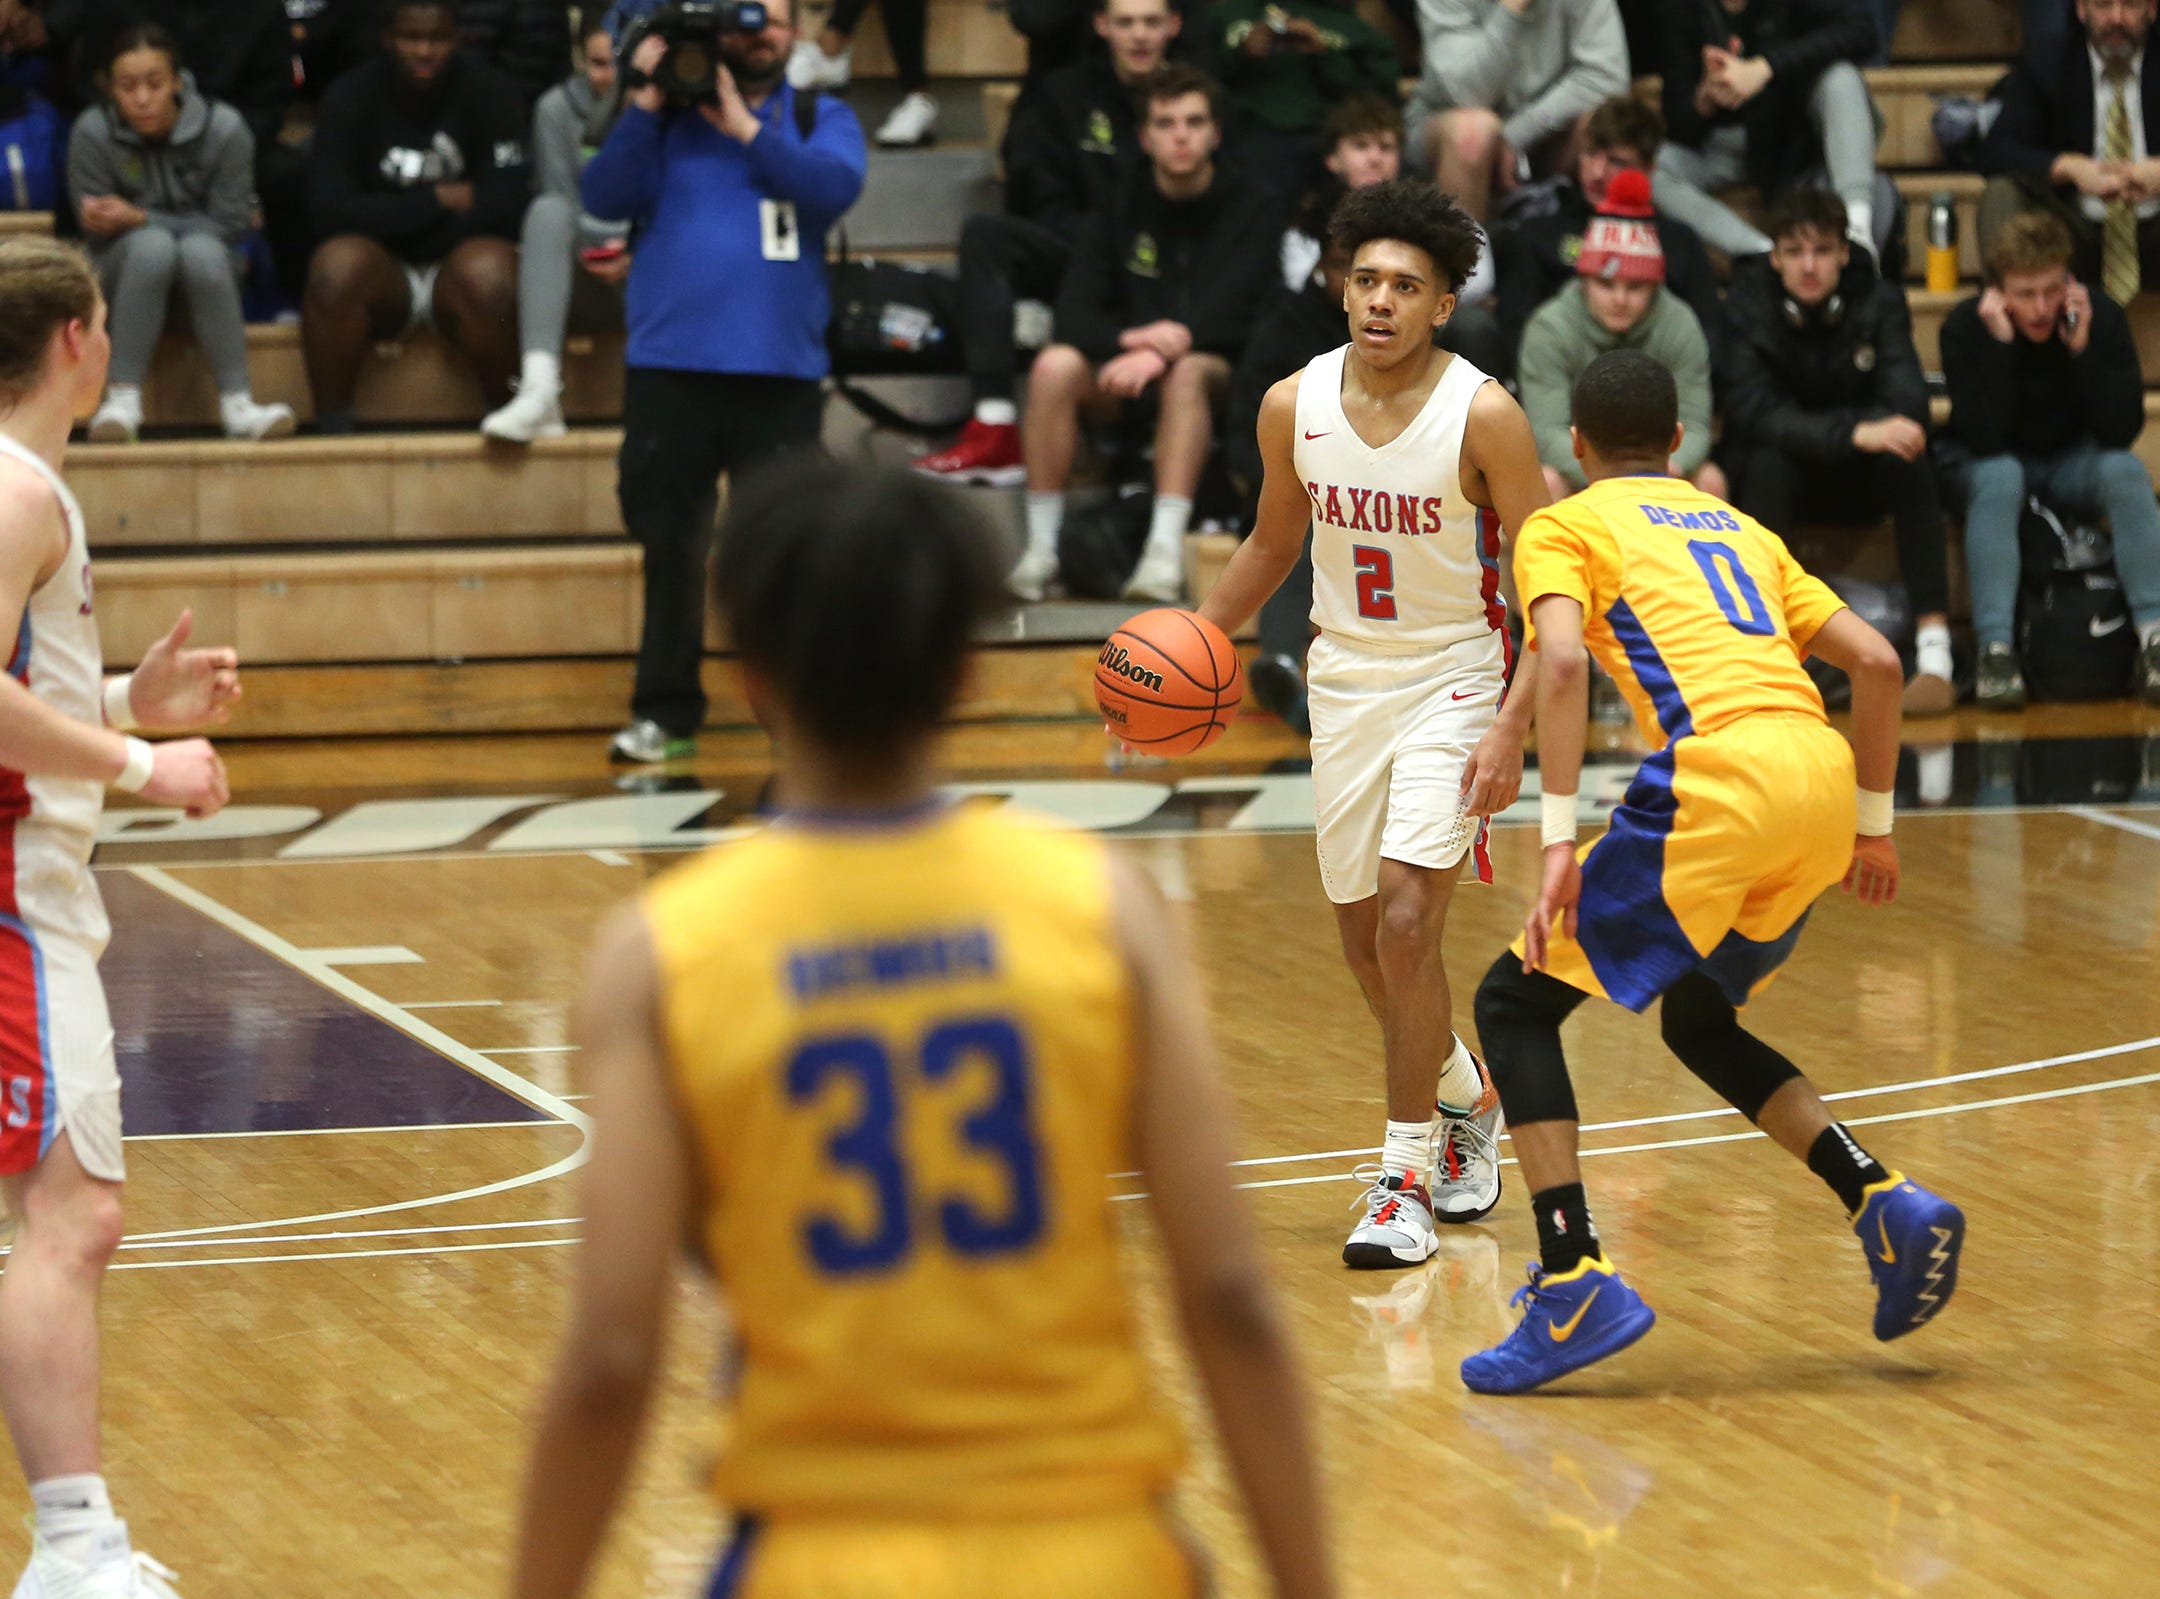 South Salem's Jaden Nielsen-Skinner (2) makes his way across the court during the South Salem vs. Jefferson boys basketball OSAA 6A semifinal game at Chiles Center in Portland on Friday, March 8, 2019.